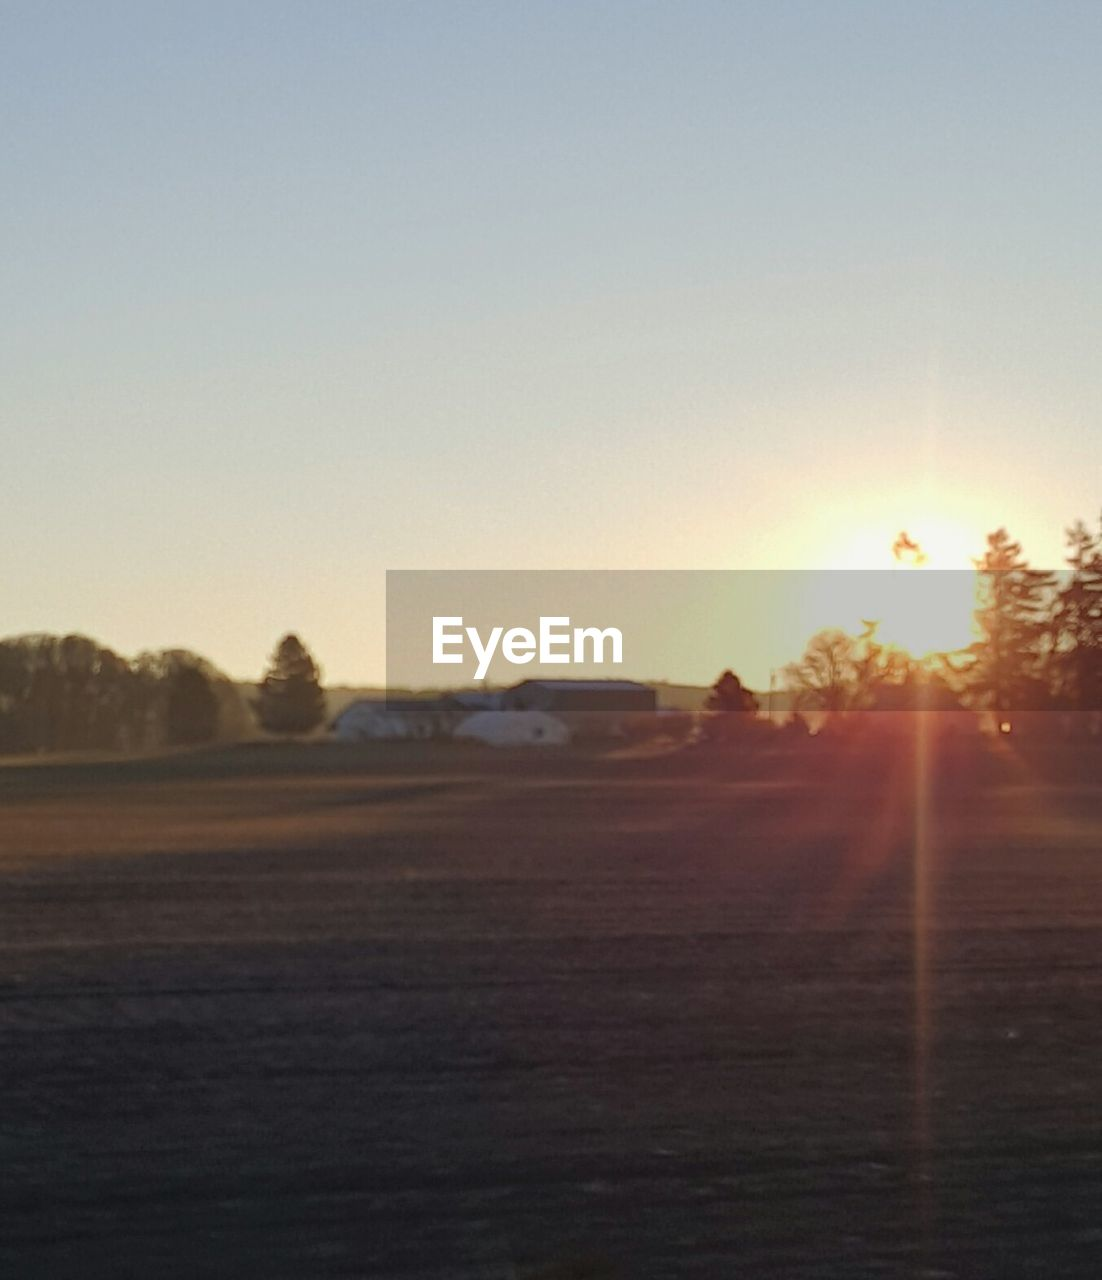 sky, sunset, nature, clear sky, copy space, tranquility, plant, tranquil scene, field, scenics - nature, landscape, tree, land, sunlight, environment, no people, sun, beauty in nature, lens flare, outdoors